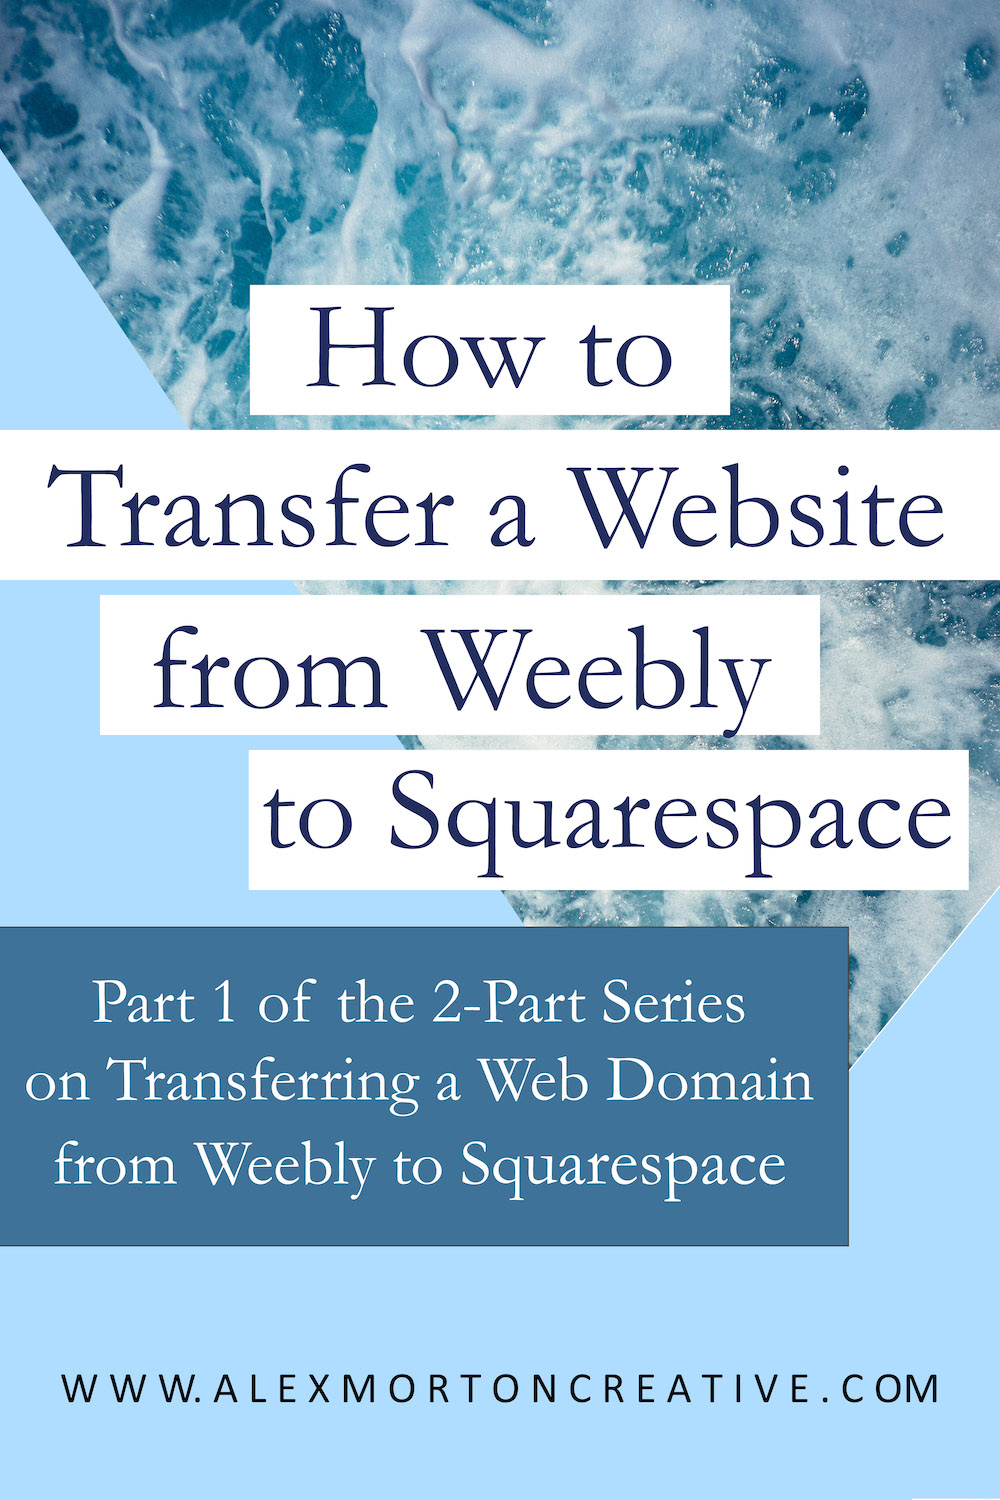 How to Transfer a Website from Weebly to Squarespace (Part 1) — Alex